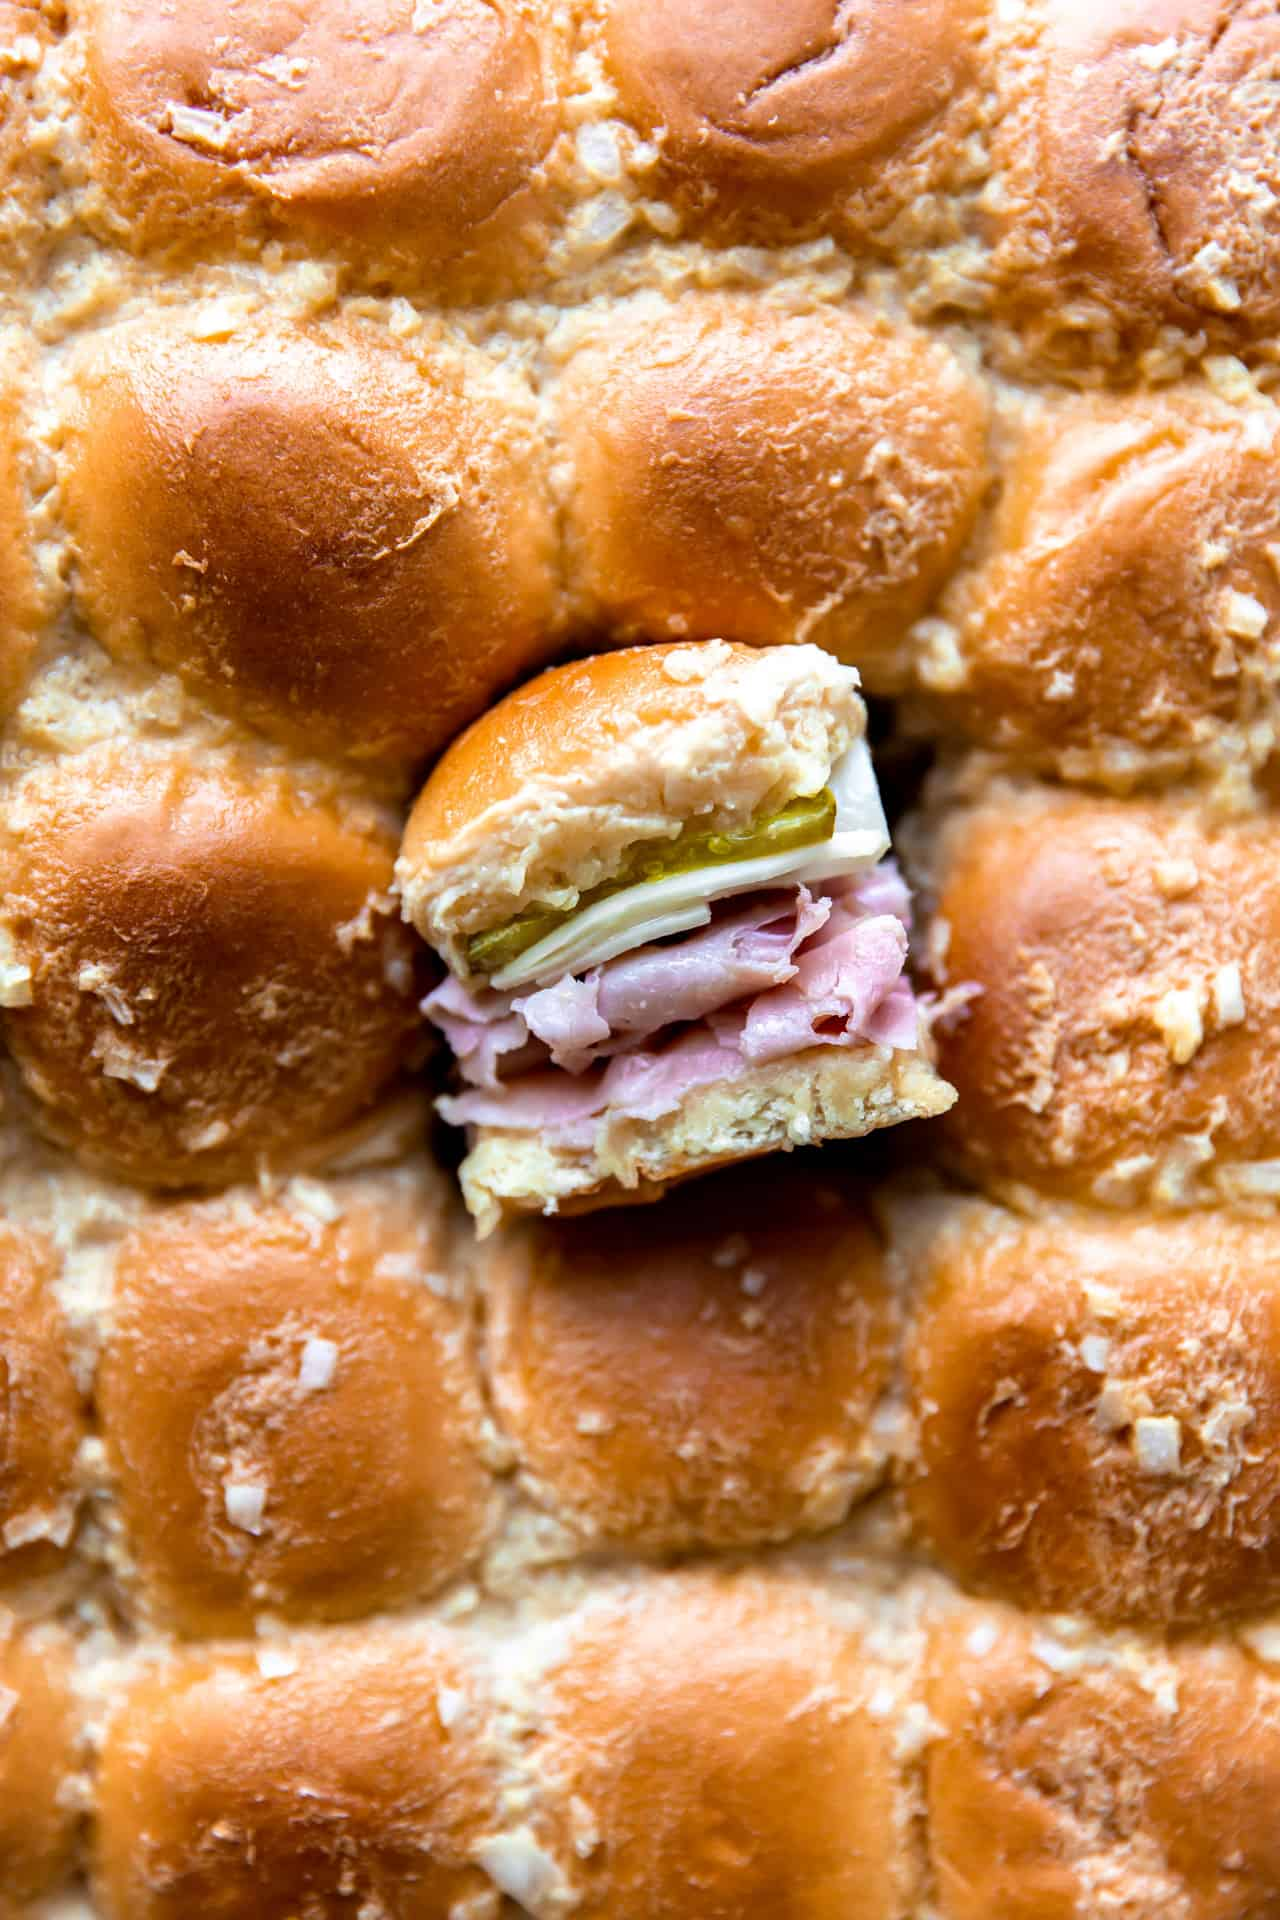 Overhead shot of the tops of sliders with one slider cut out and turned on it's side to show the layers of buns, sliced ham, Swiss cheese and pickles on the inside.